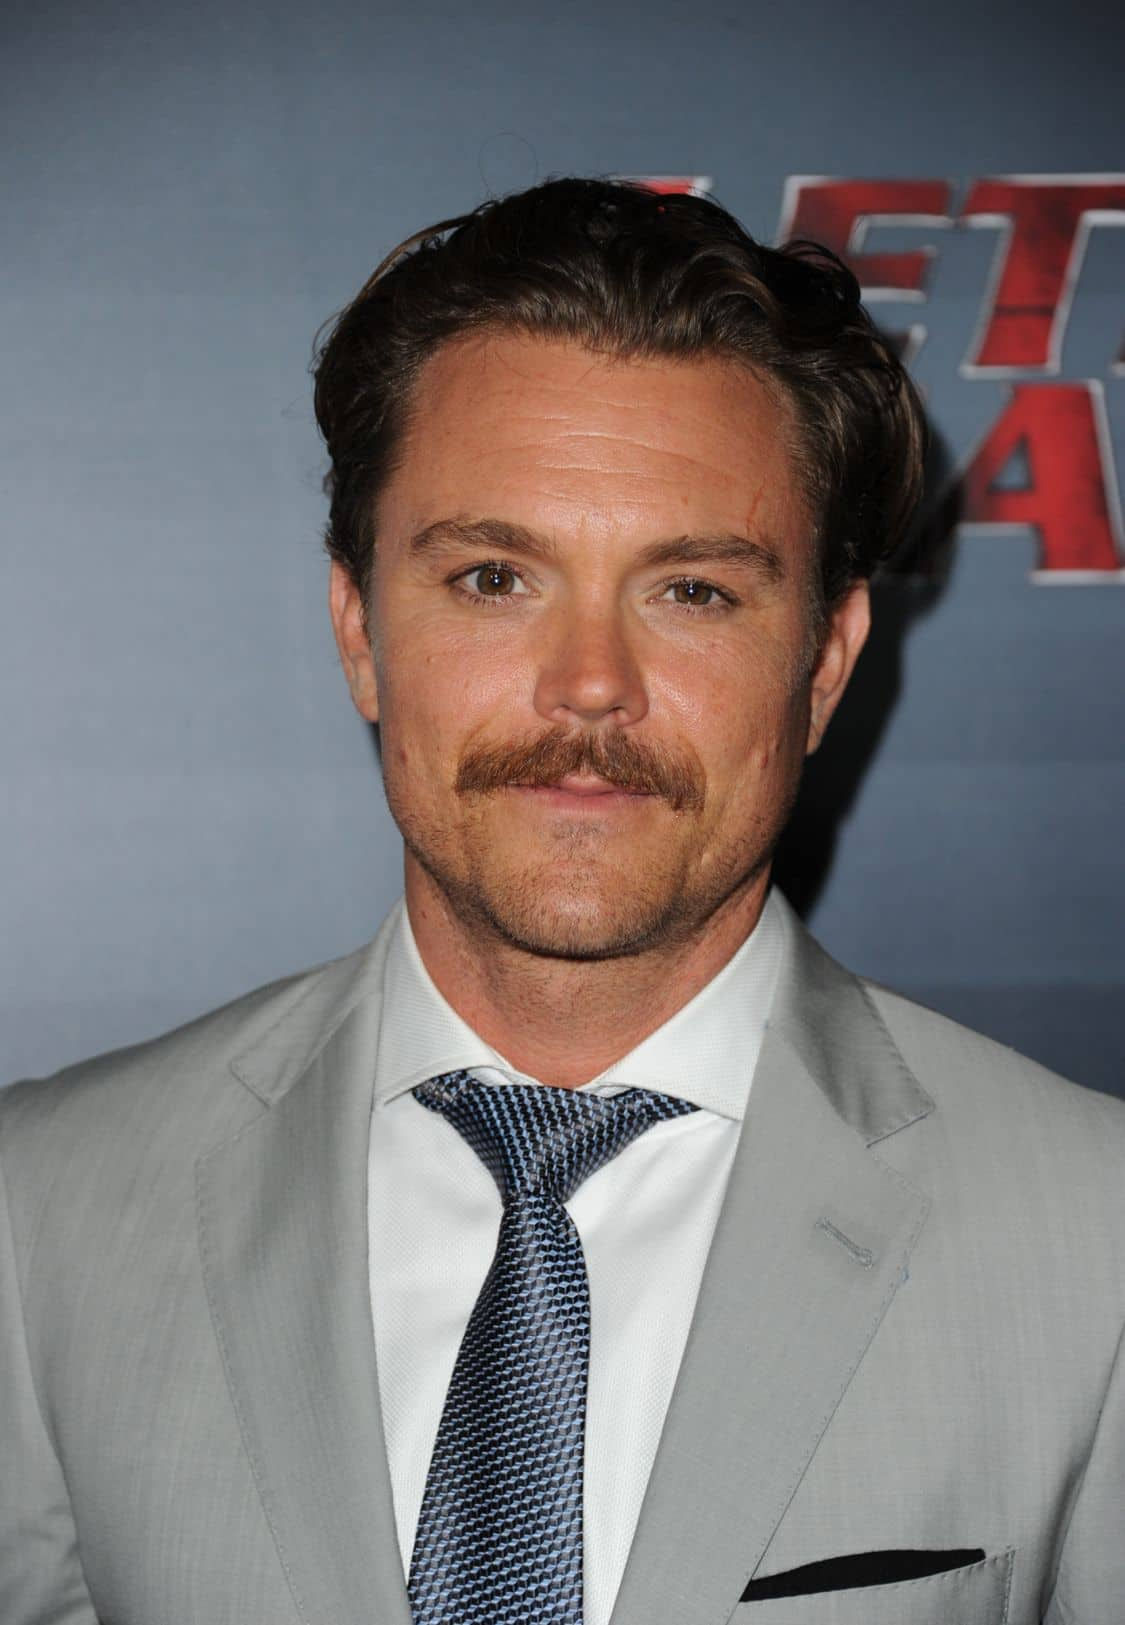 LETHAL WEAPON: Clayne Crawford celebrates the LETHAL WEAPON premiere party at NeueHouse Hollywood on Monday, Sept. 12, in Los Angeles, CA, sponsored by Ford. LETHAL WEAPON premieres Wednesday, Sept. 21 (8:00-9:00 PM ET/PT) on FOX. ©2016 Fox Broadcasting Co. CR: Frank Micelotta/FOX